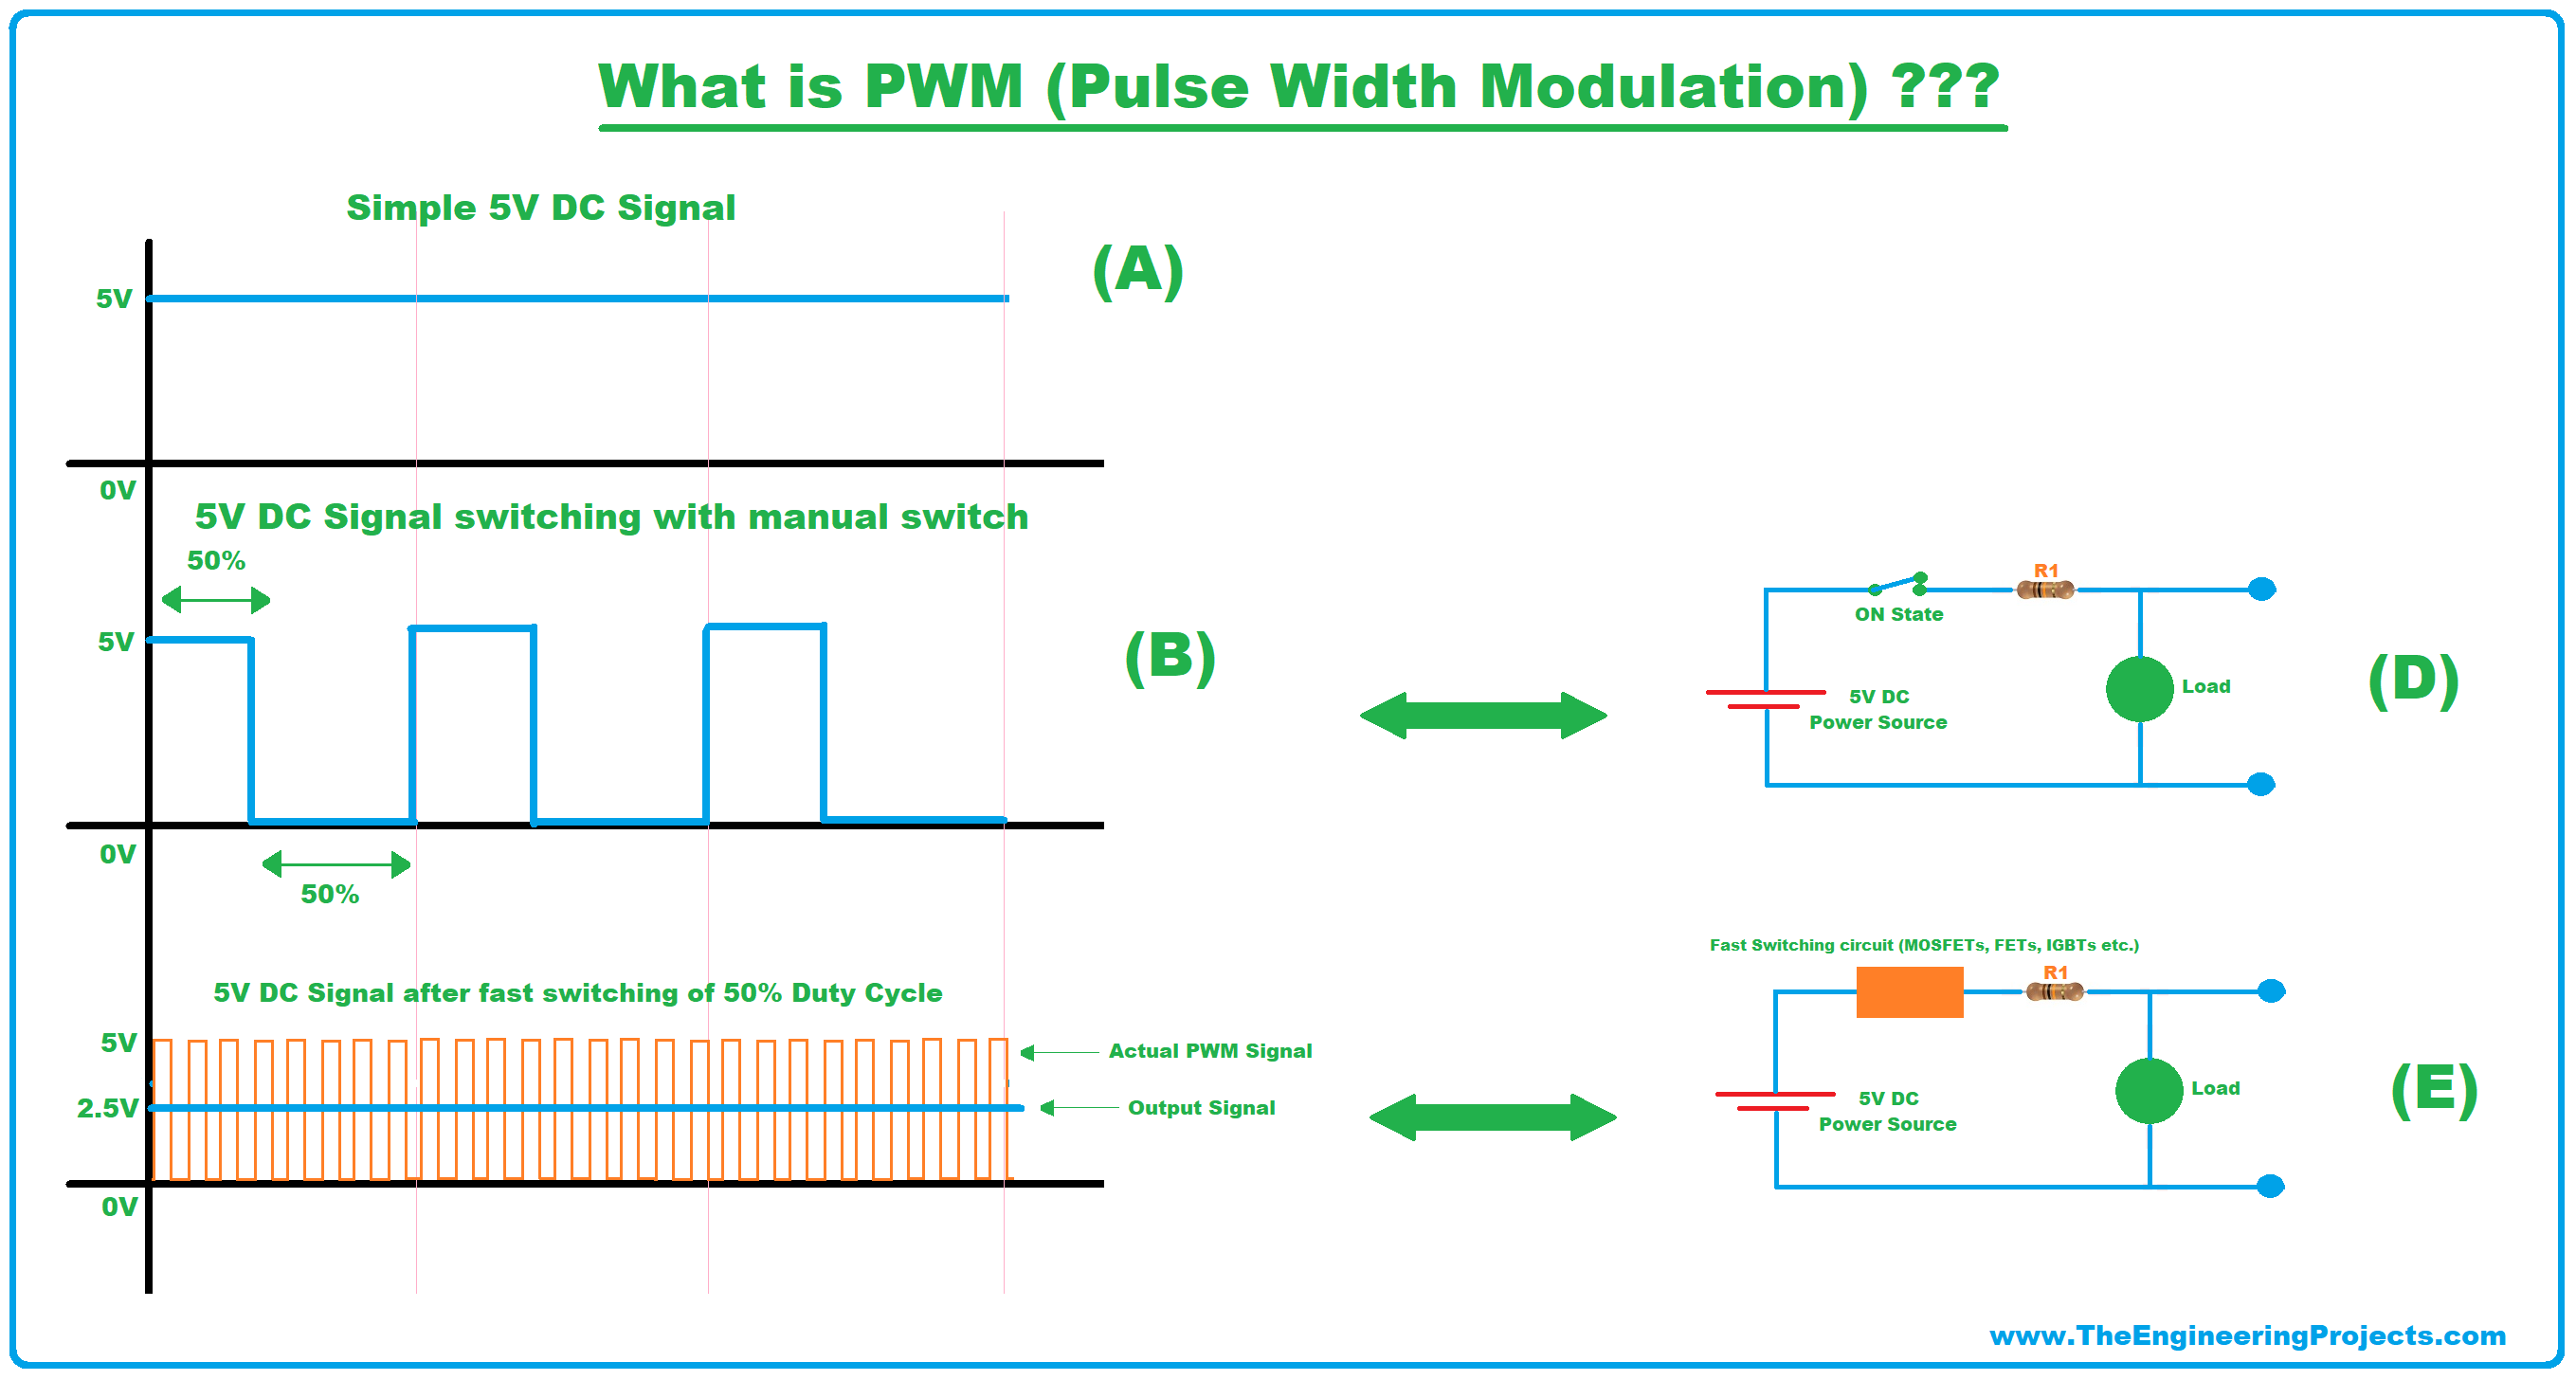 pwm, pulse width modulation, what is pwm what is pulse width modulation, pwm applications, duty cycle, pwm examples, pwm meaning, pwm circuit